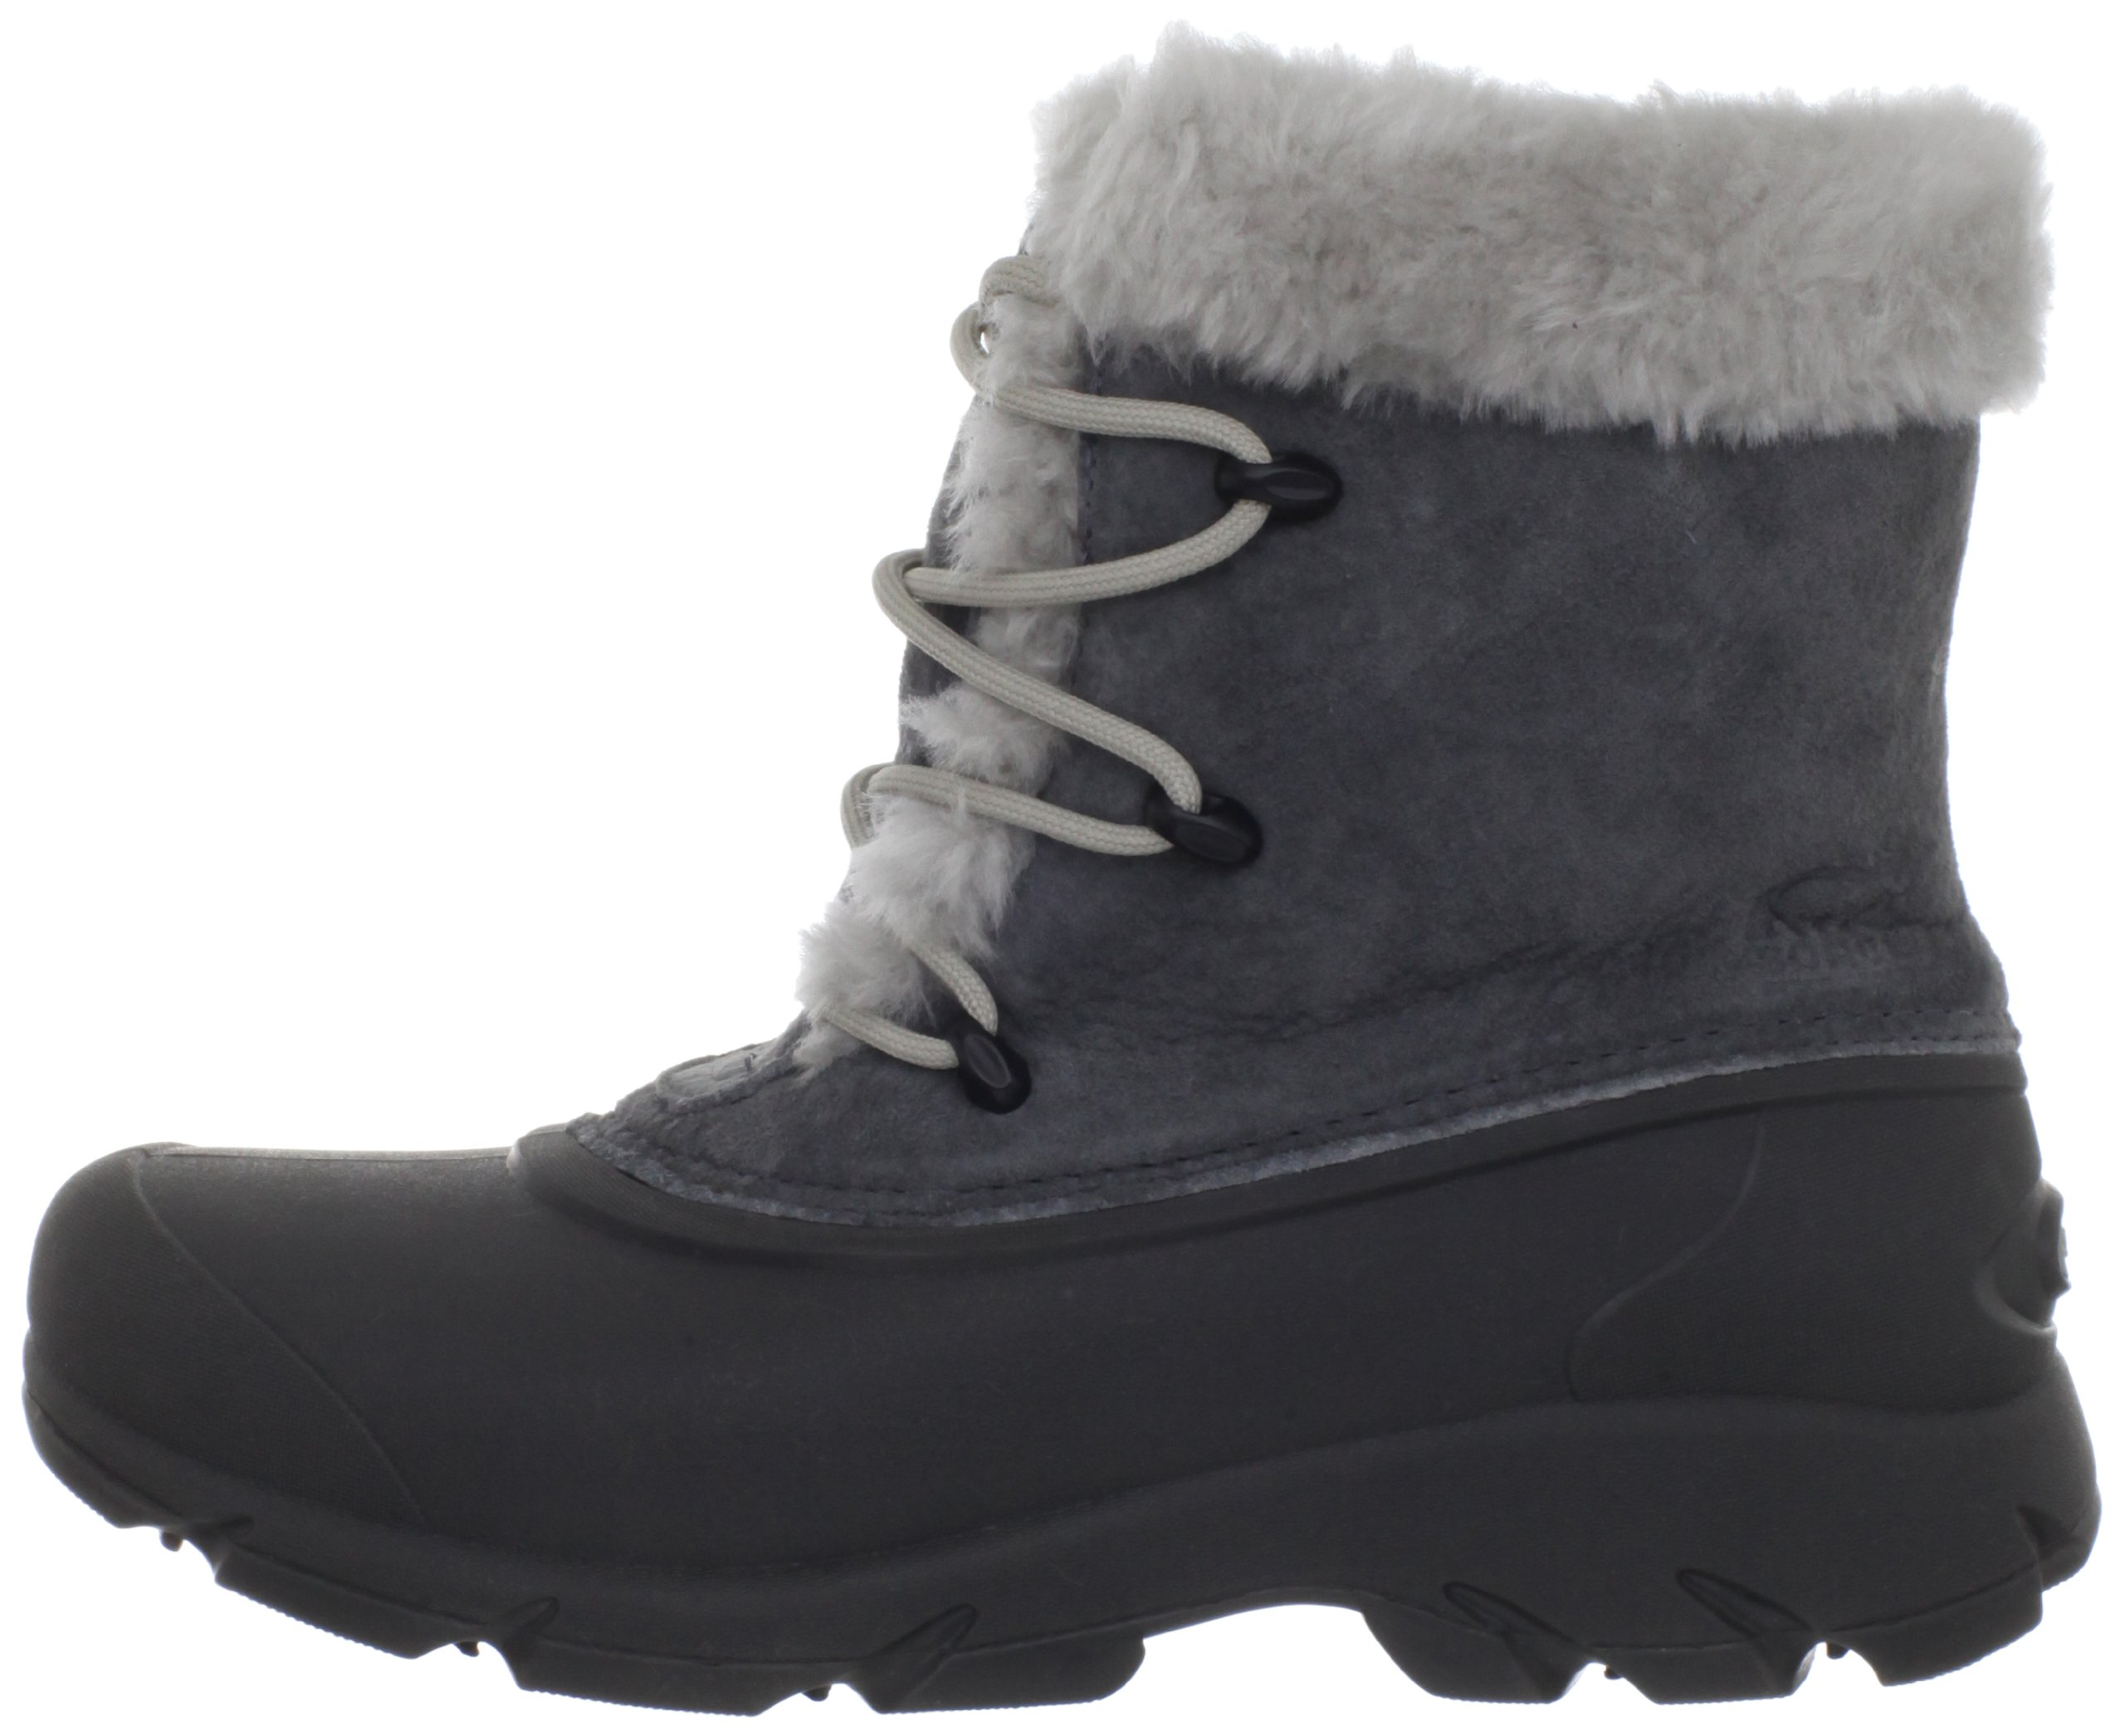 Sorel Women's Snow Angel Lace Boot,Charcoal,8 M US by SOREL (Image #5)